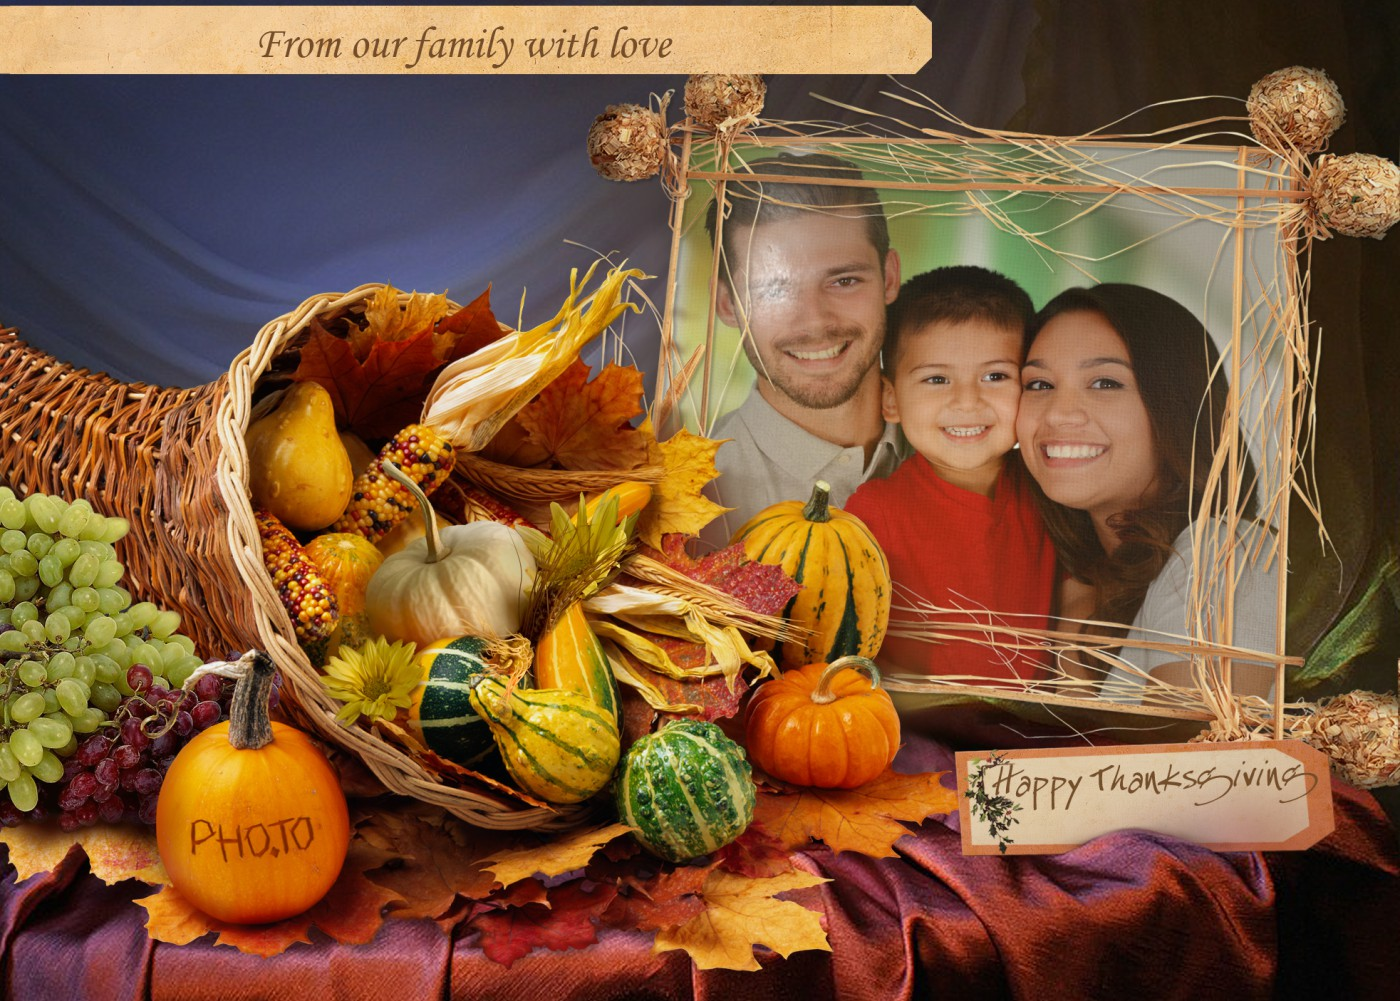 Exquisite Put Your Photo Into Thanksgiving Card Template To Get A Thanksgiving Greeting Card Say It Happy Thanksgiving Family Clipart Happy Thanksgiving Family Poems ideas Happy Thanksgiving Family